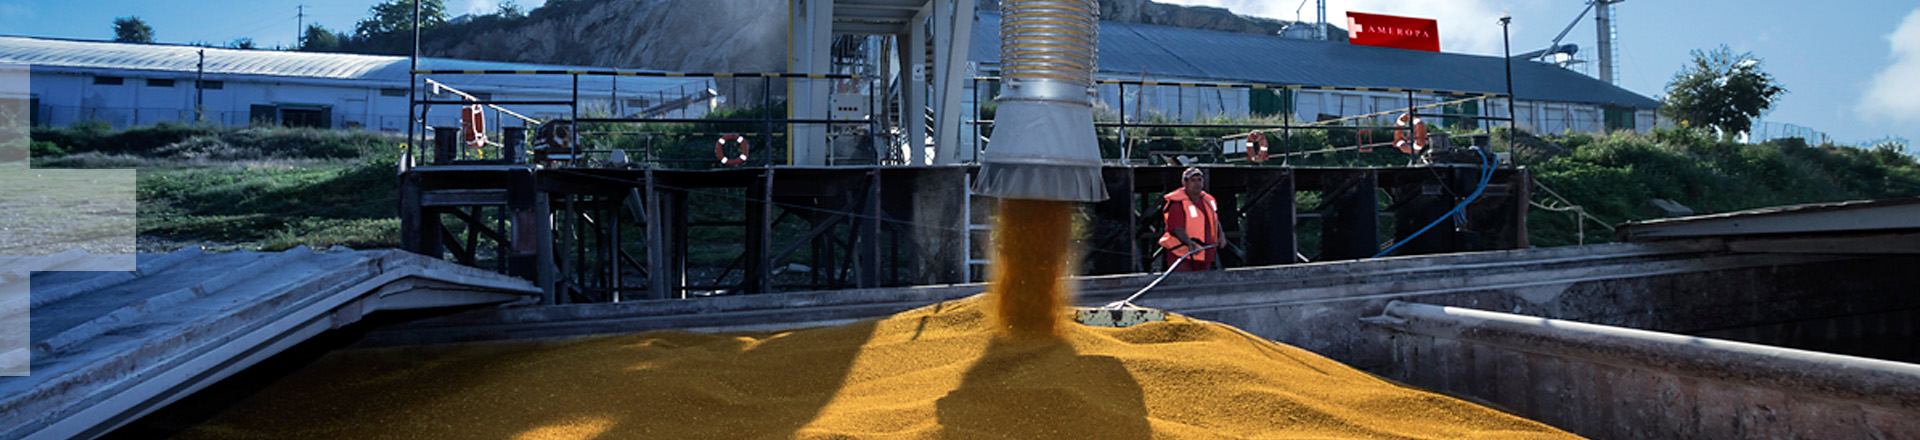 Ameropa Fertilizers Food Feed Danube Agriculture Business Grains Cereals Plant